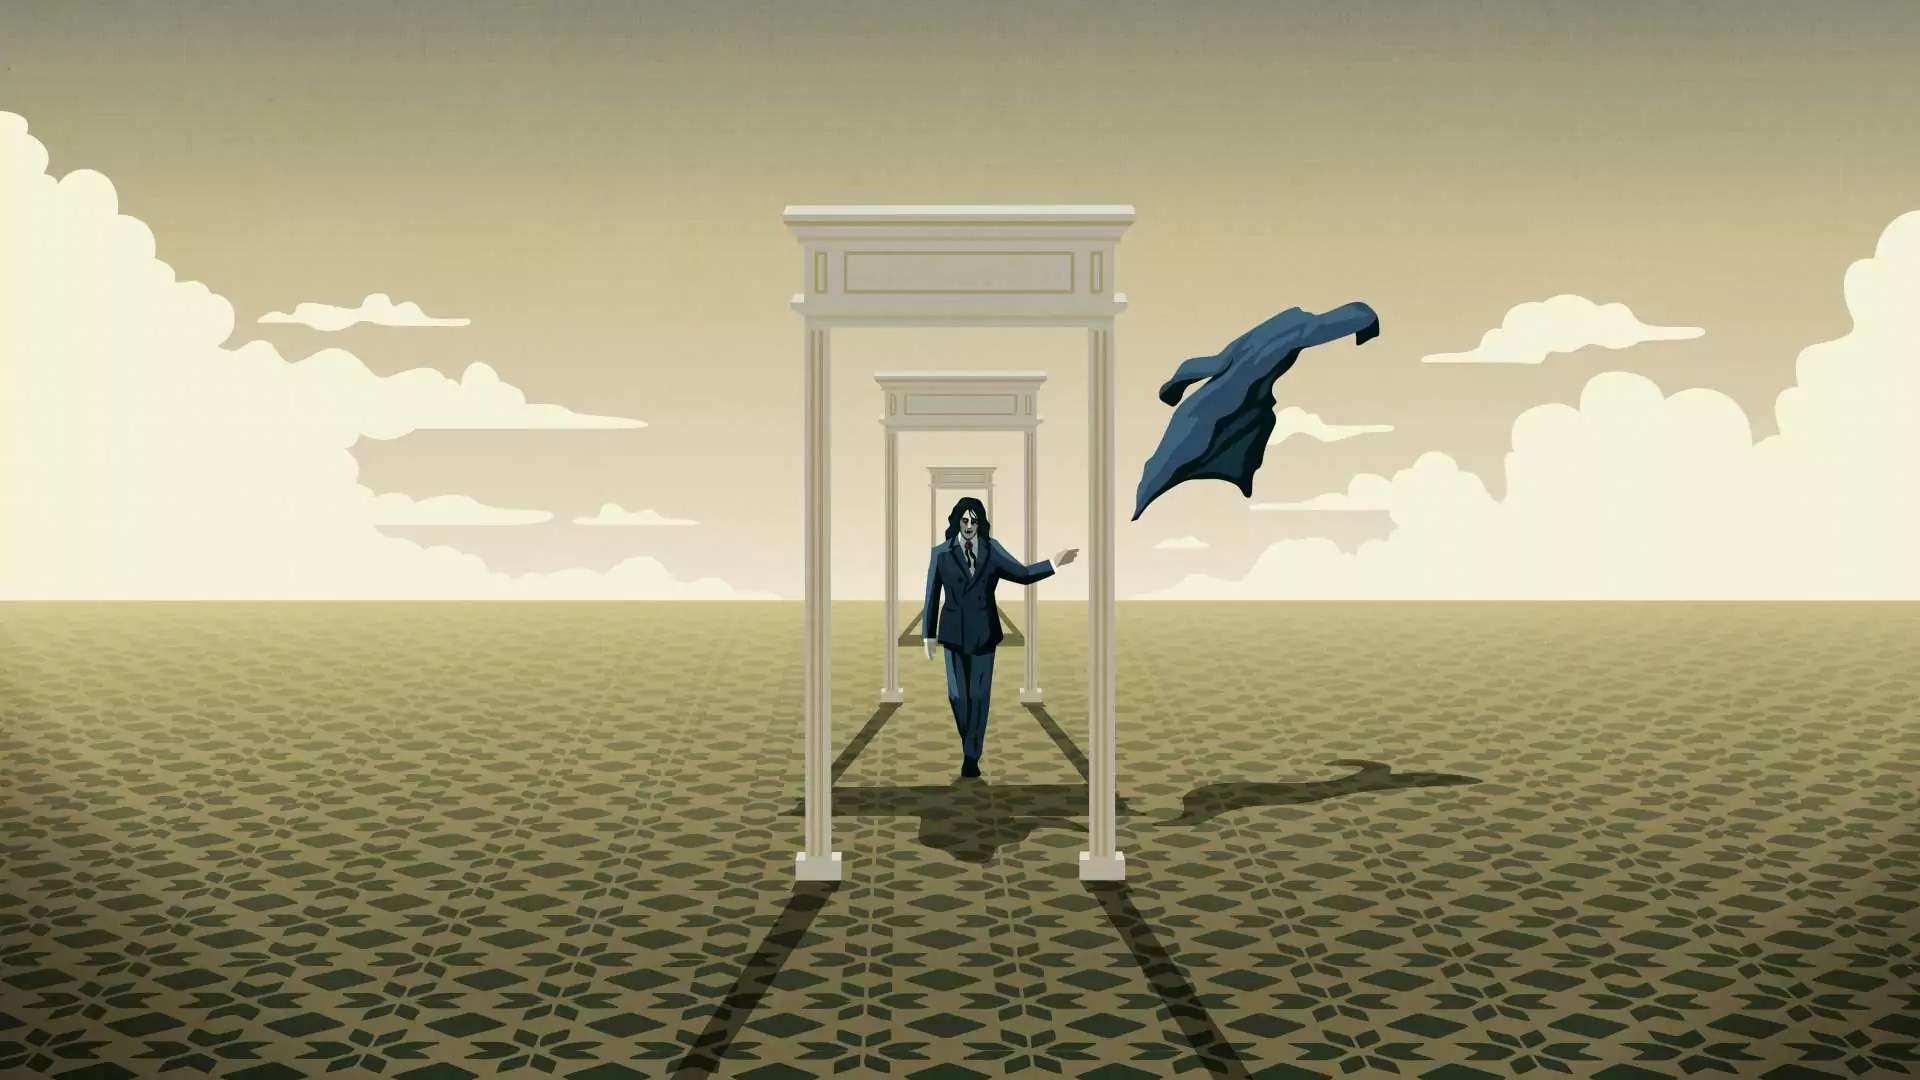 A pale man with long hair walks through surreal corridors, throwing a shirt to the wind.